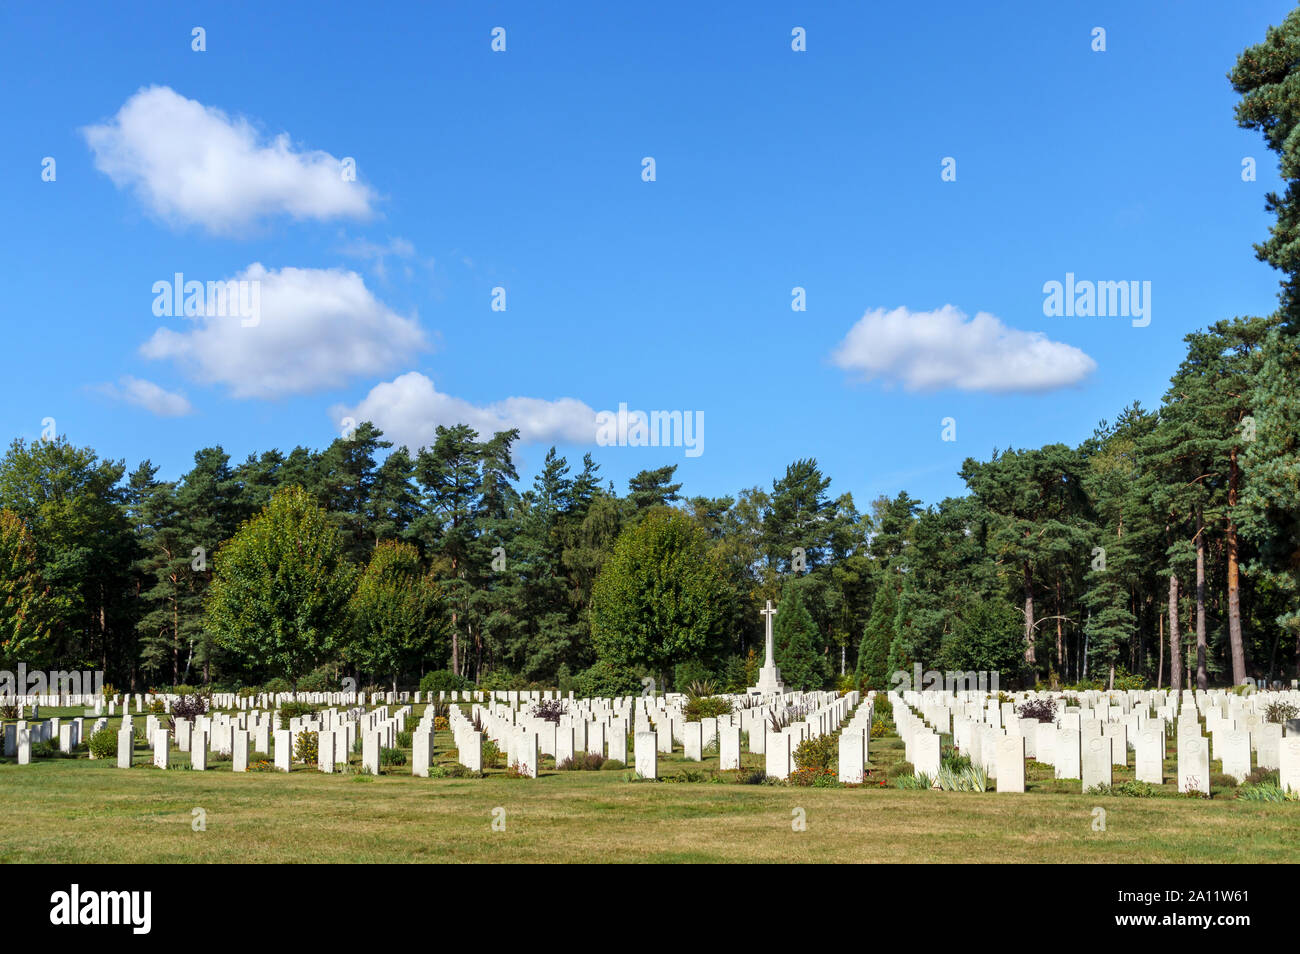 Gravestones in the Canadian Section of the Military Cemetery at Brookwood Cemetery, Pirbright, Woking, Surrey, southeast England, UK Stock Photo